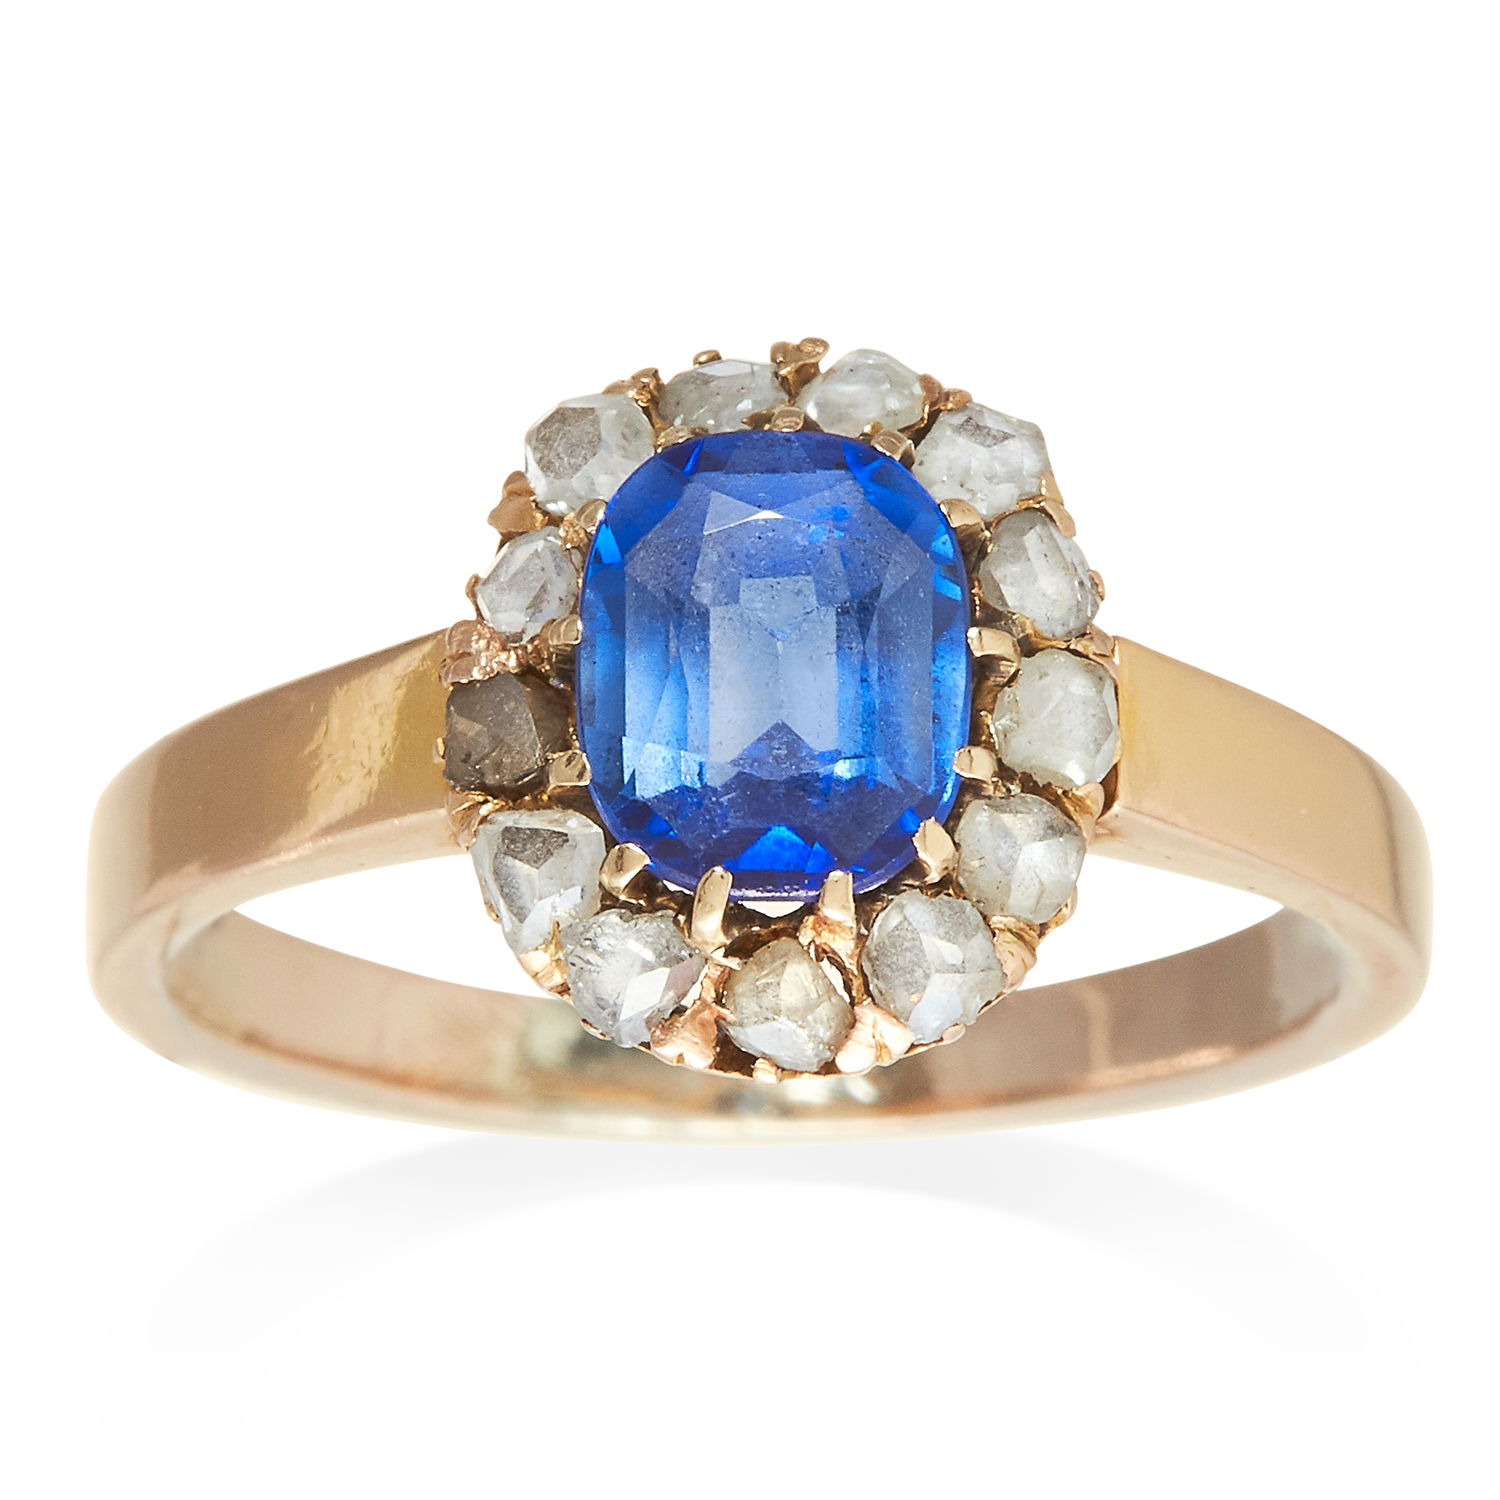 Los 328 - AN ANTIQUE SAPPHIRE AND DIAMOND RING in yellow gold, the oval cut sapphire encircled by diamonds,